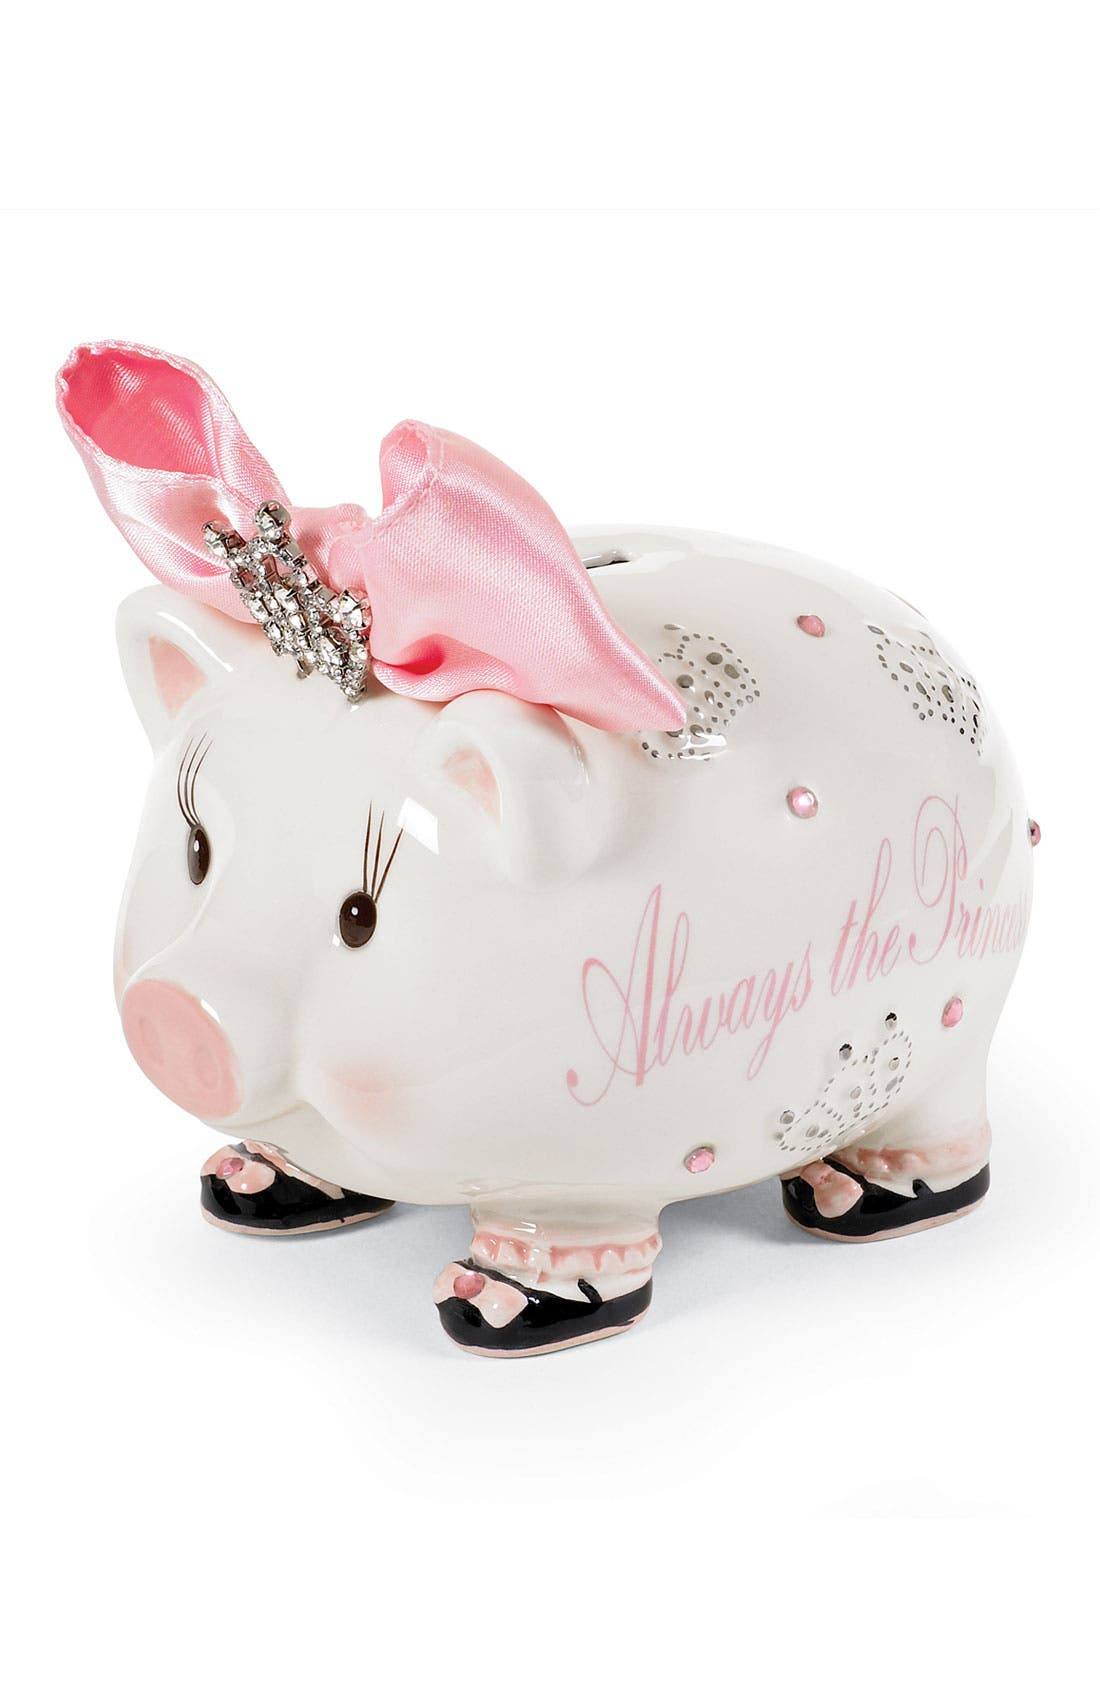 Mud pie ballerina piggy bank mud pie - Mud Pie Ballerina Piggy Bank Mud Pie 23